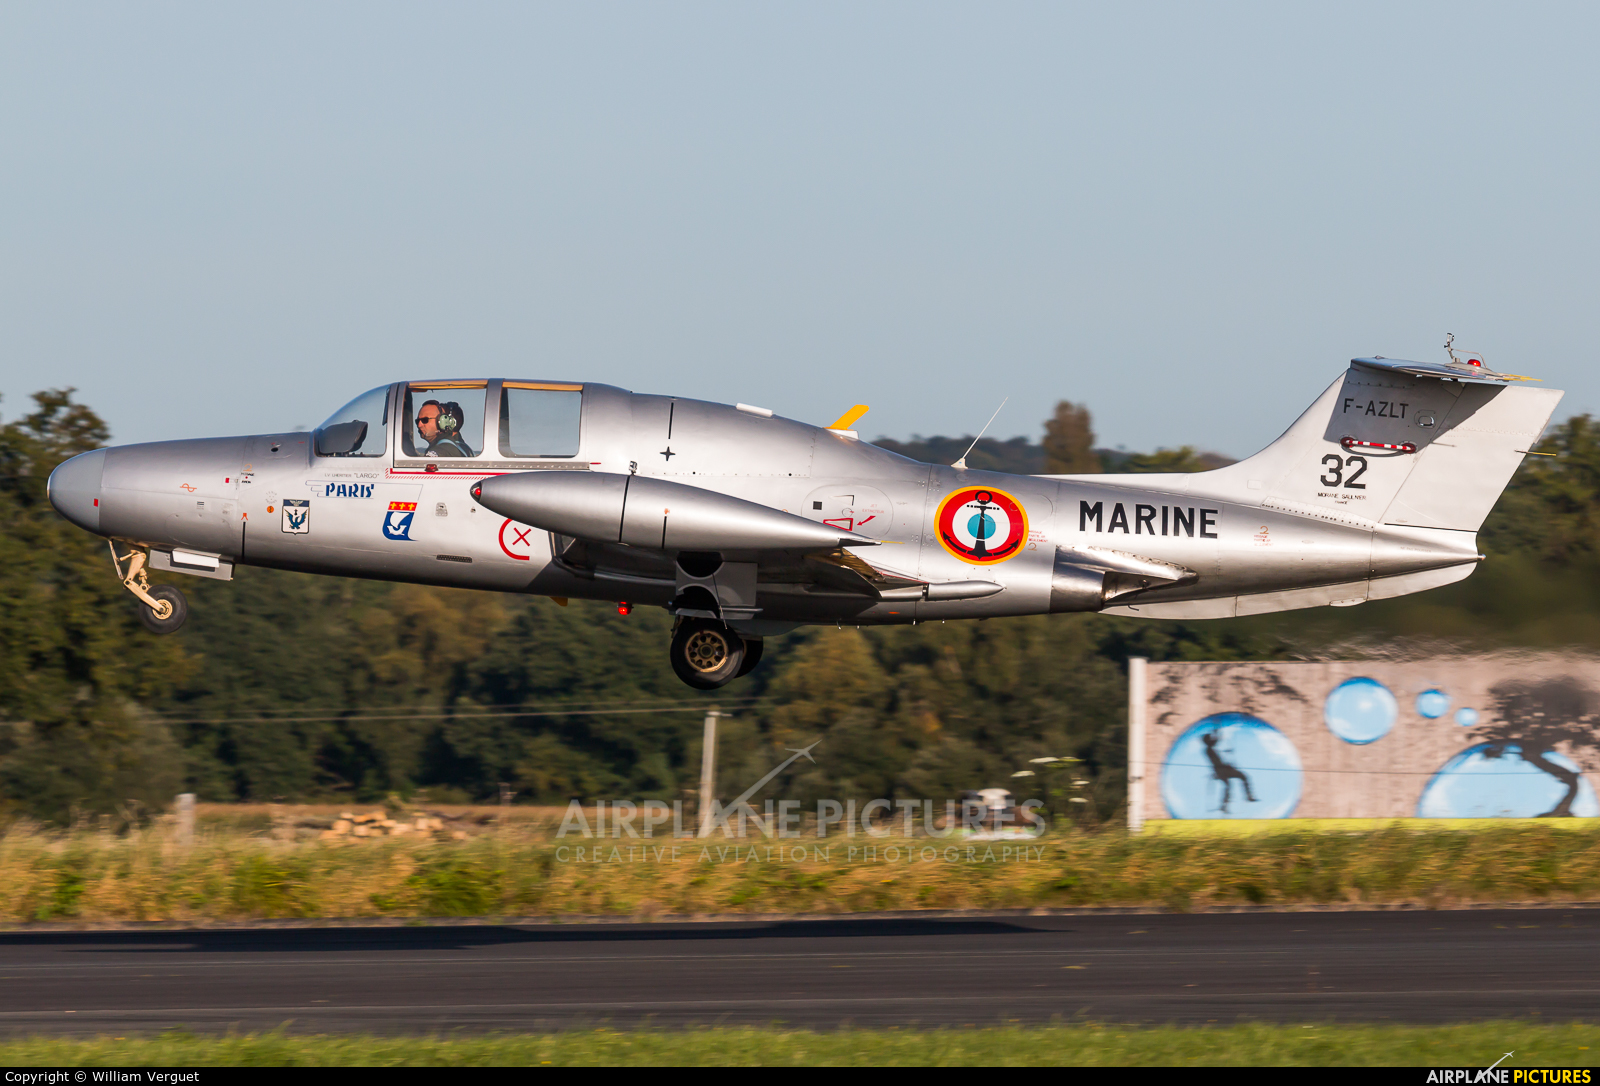 Private F-AZLT aircraft at Morlaix Ploujean Airport